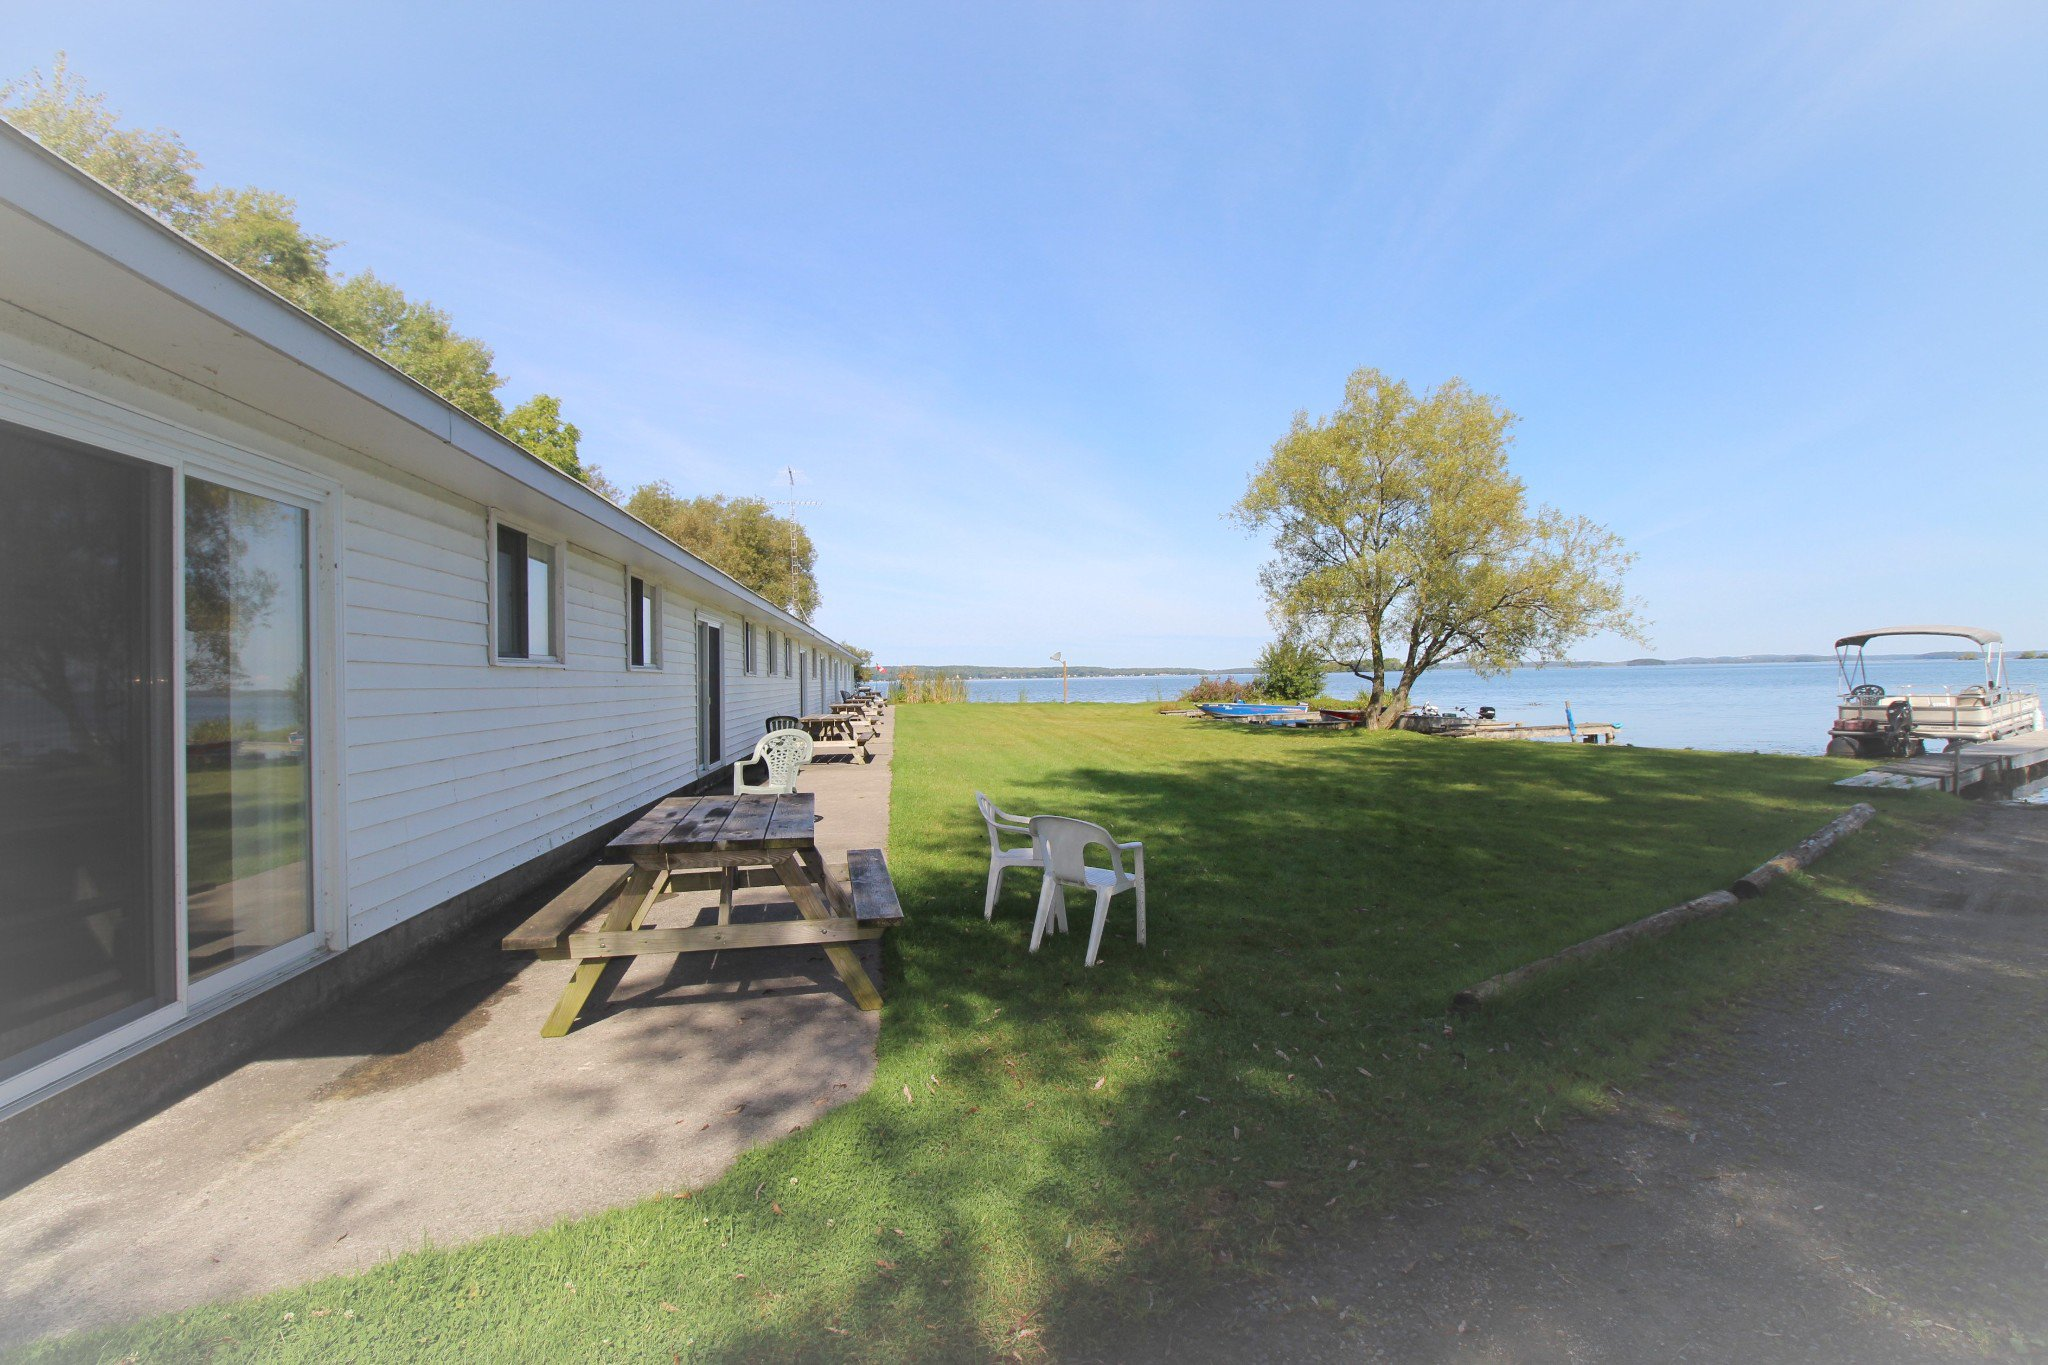 Photo 9: Photos: 6010 Rice Lake Scenic Drive in Harwood: Other for sale : MLS®# 223405